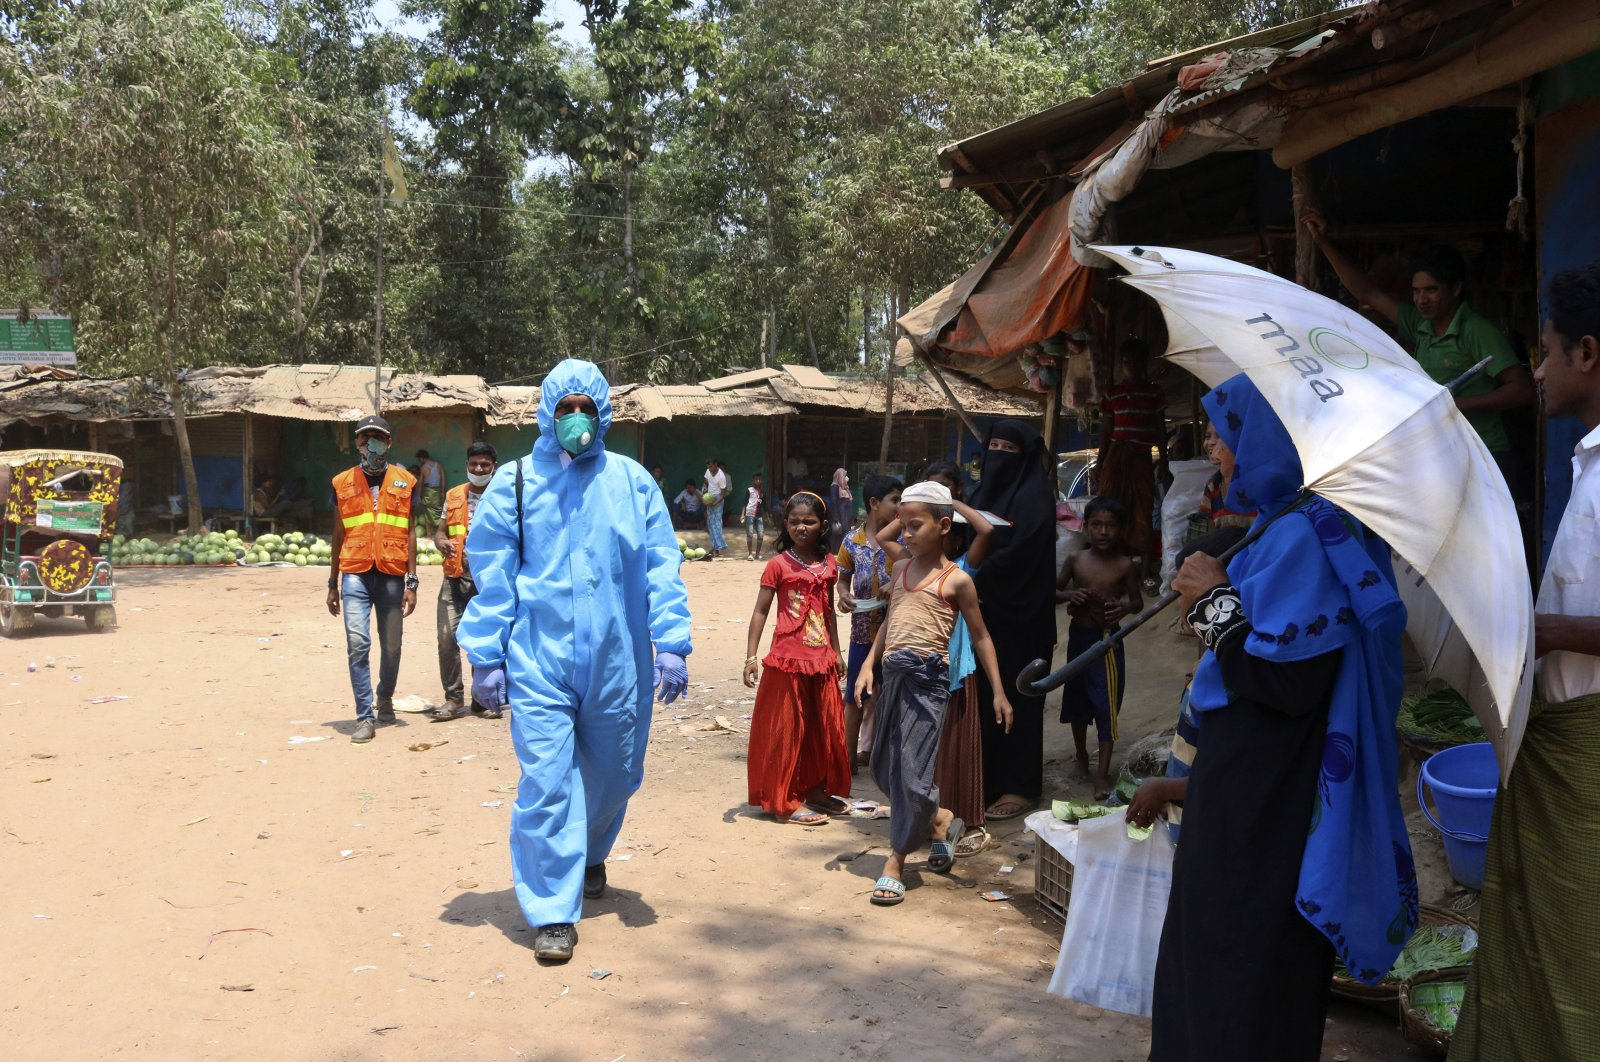 A health worker from an aid organization walks wearing a hazmat suit at the Kutupalong Rohingya refugee camp, Cox's Bazar, April 15, 2020. (AP Photo)